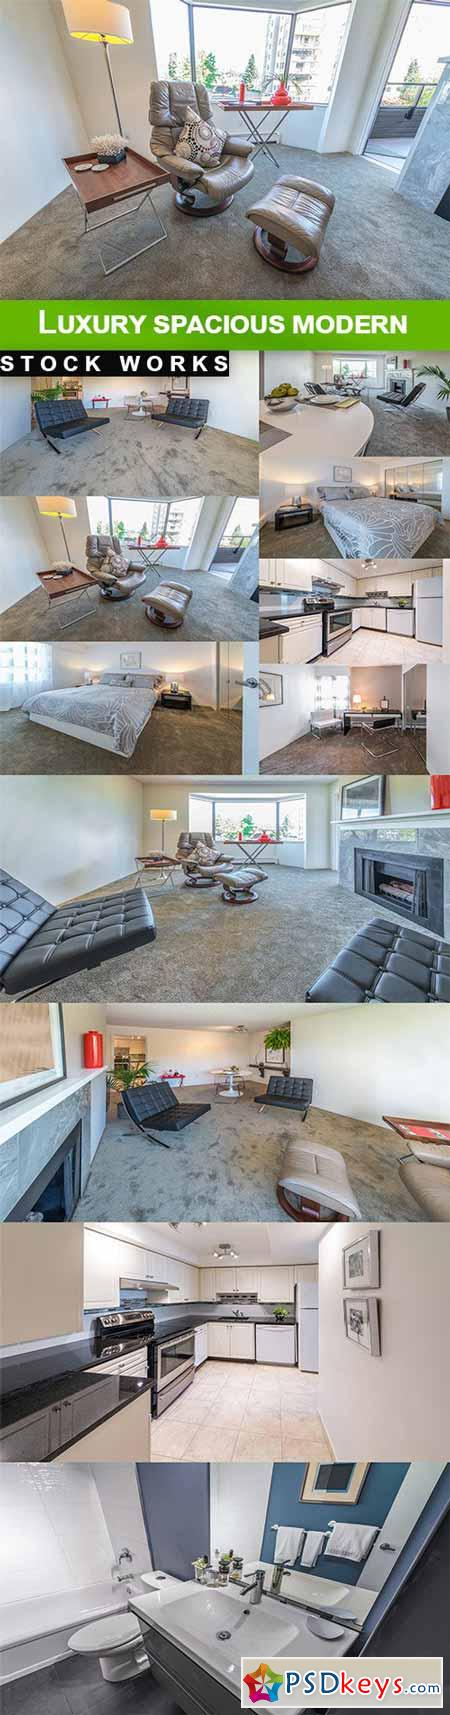 Luxury spacious modern - 11 UHQ JPEG